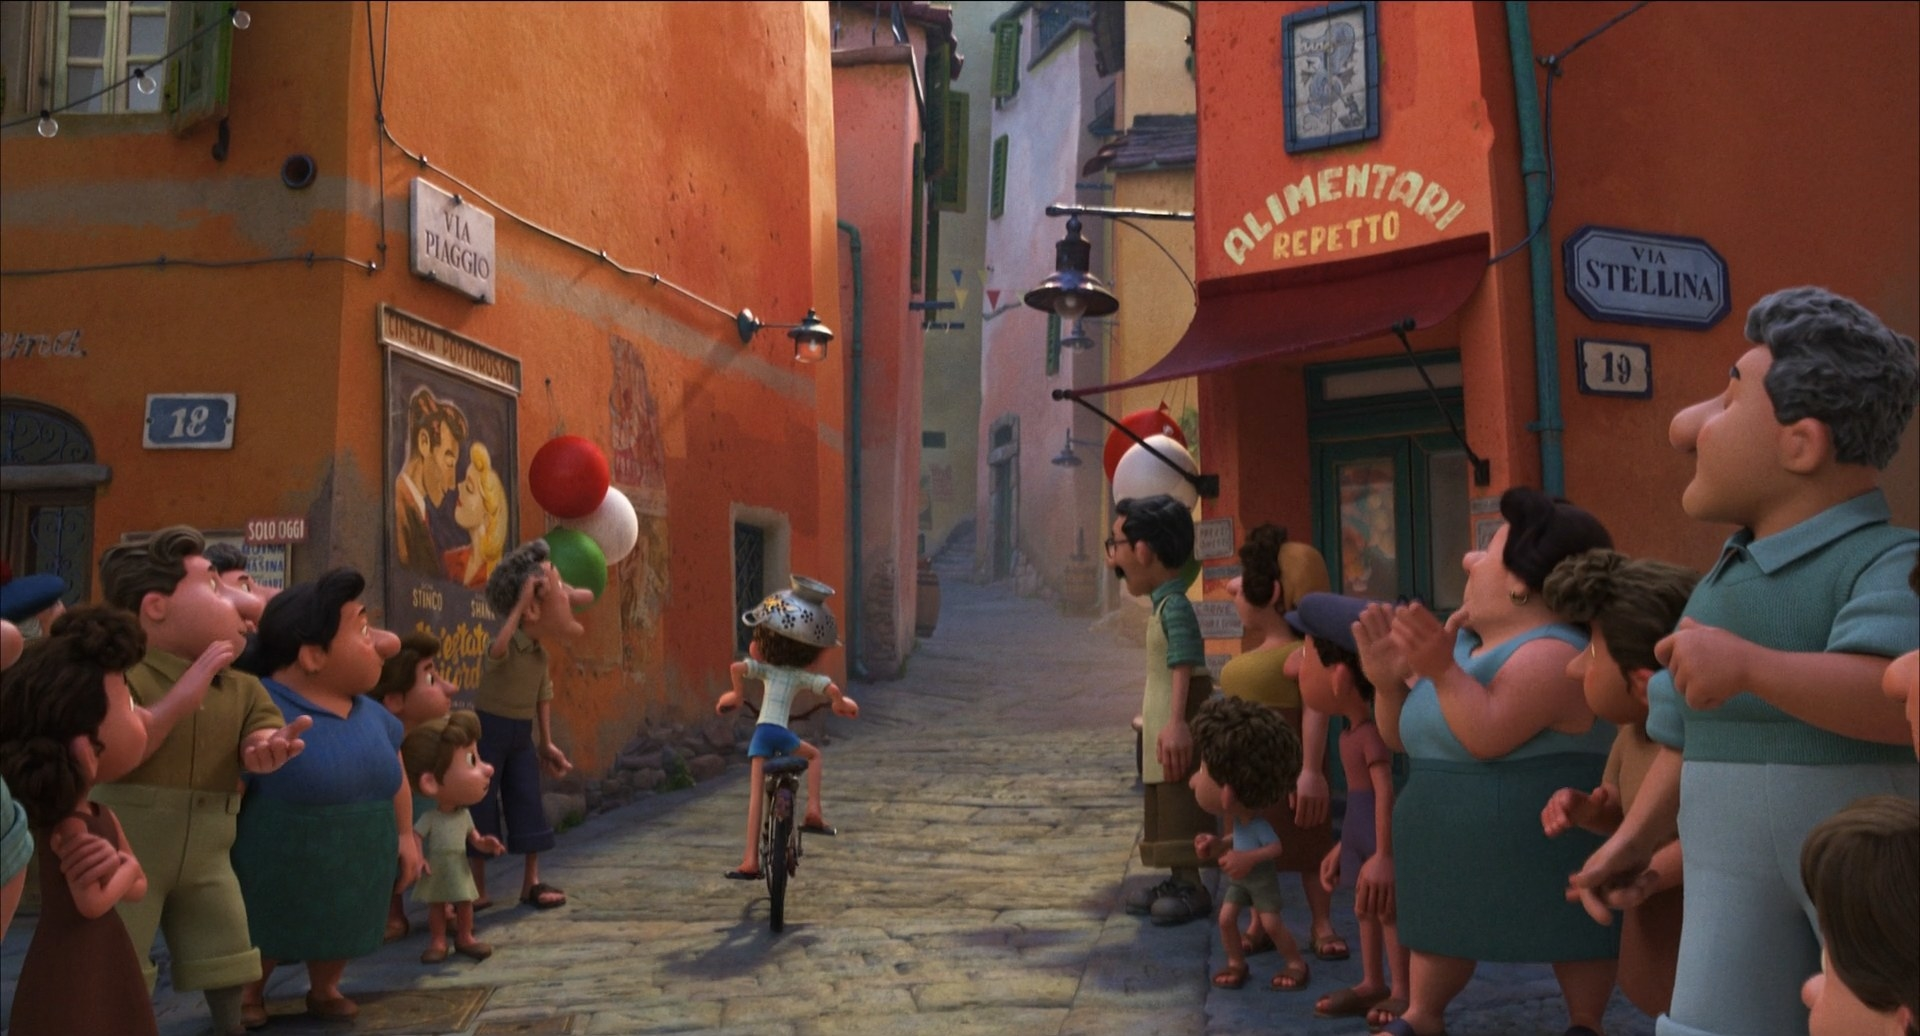 A boy rides a bicycle while townspeople look on.